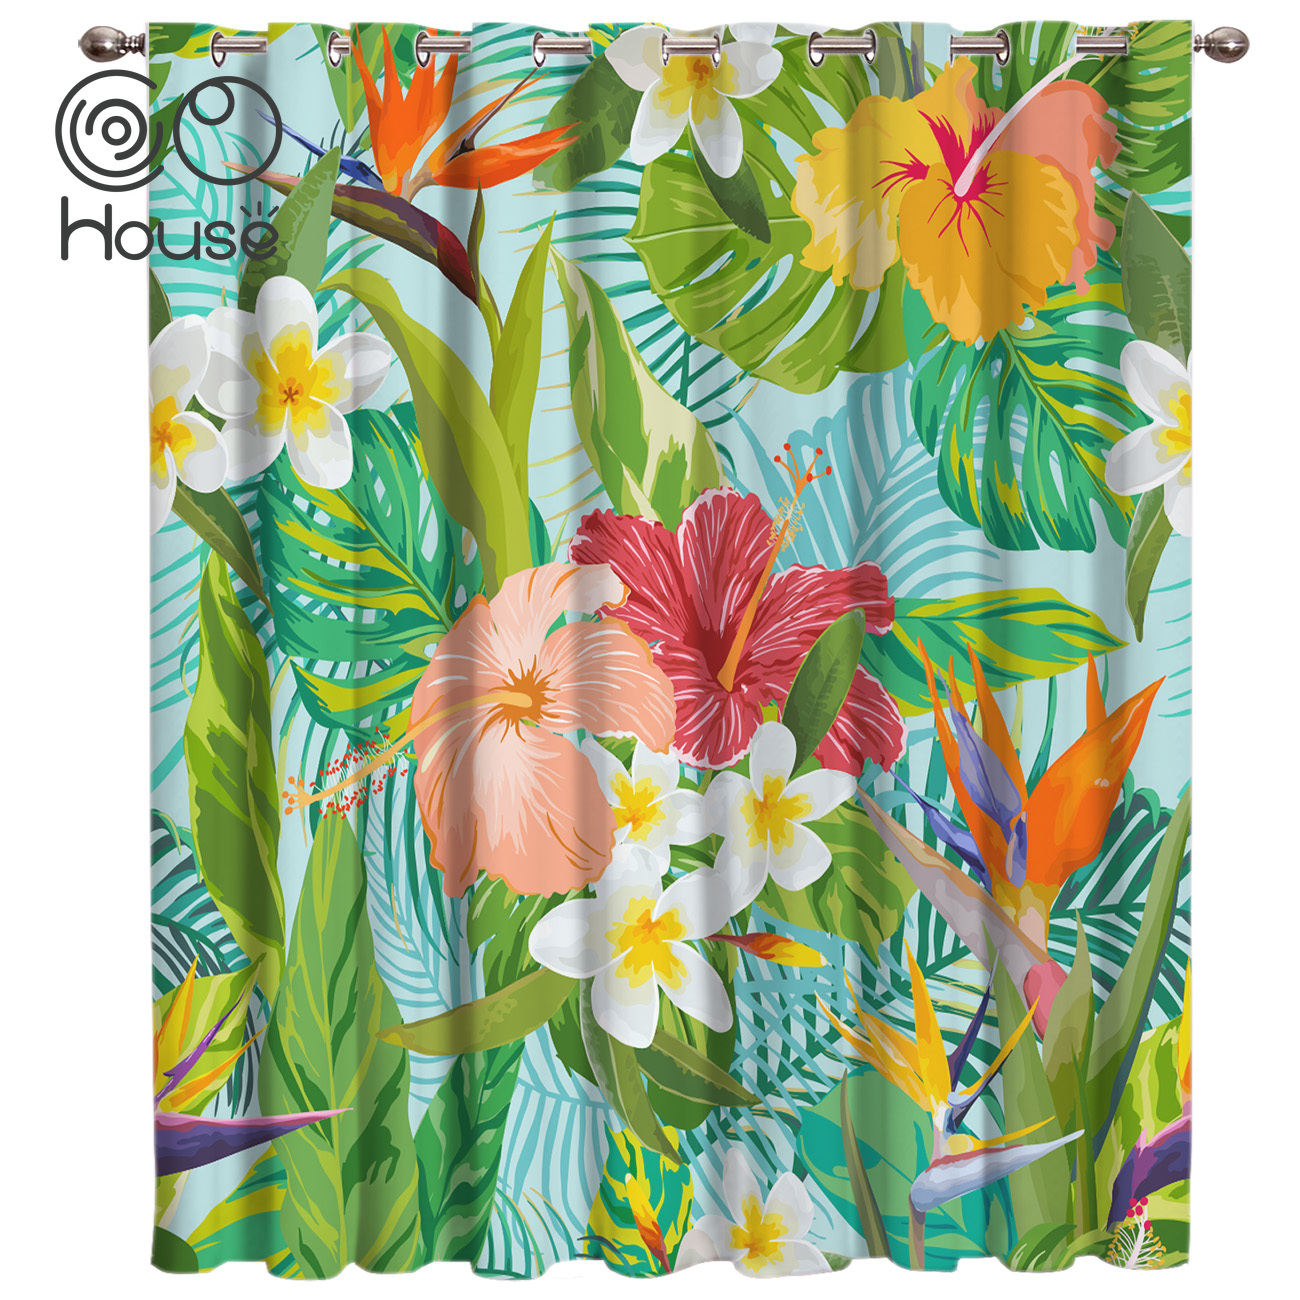 COCOHouse Tropical Flower Leaf Background Window Treatments Curtains Valance Room Curtains Large Window Living Room Blackout Bat